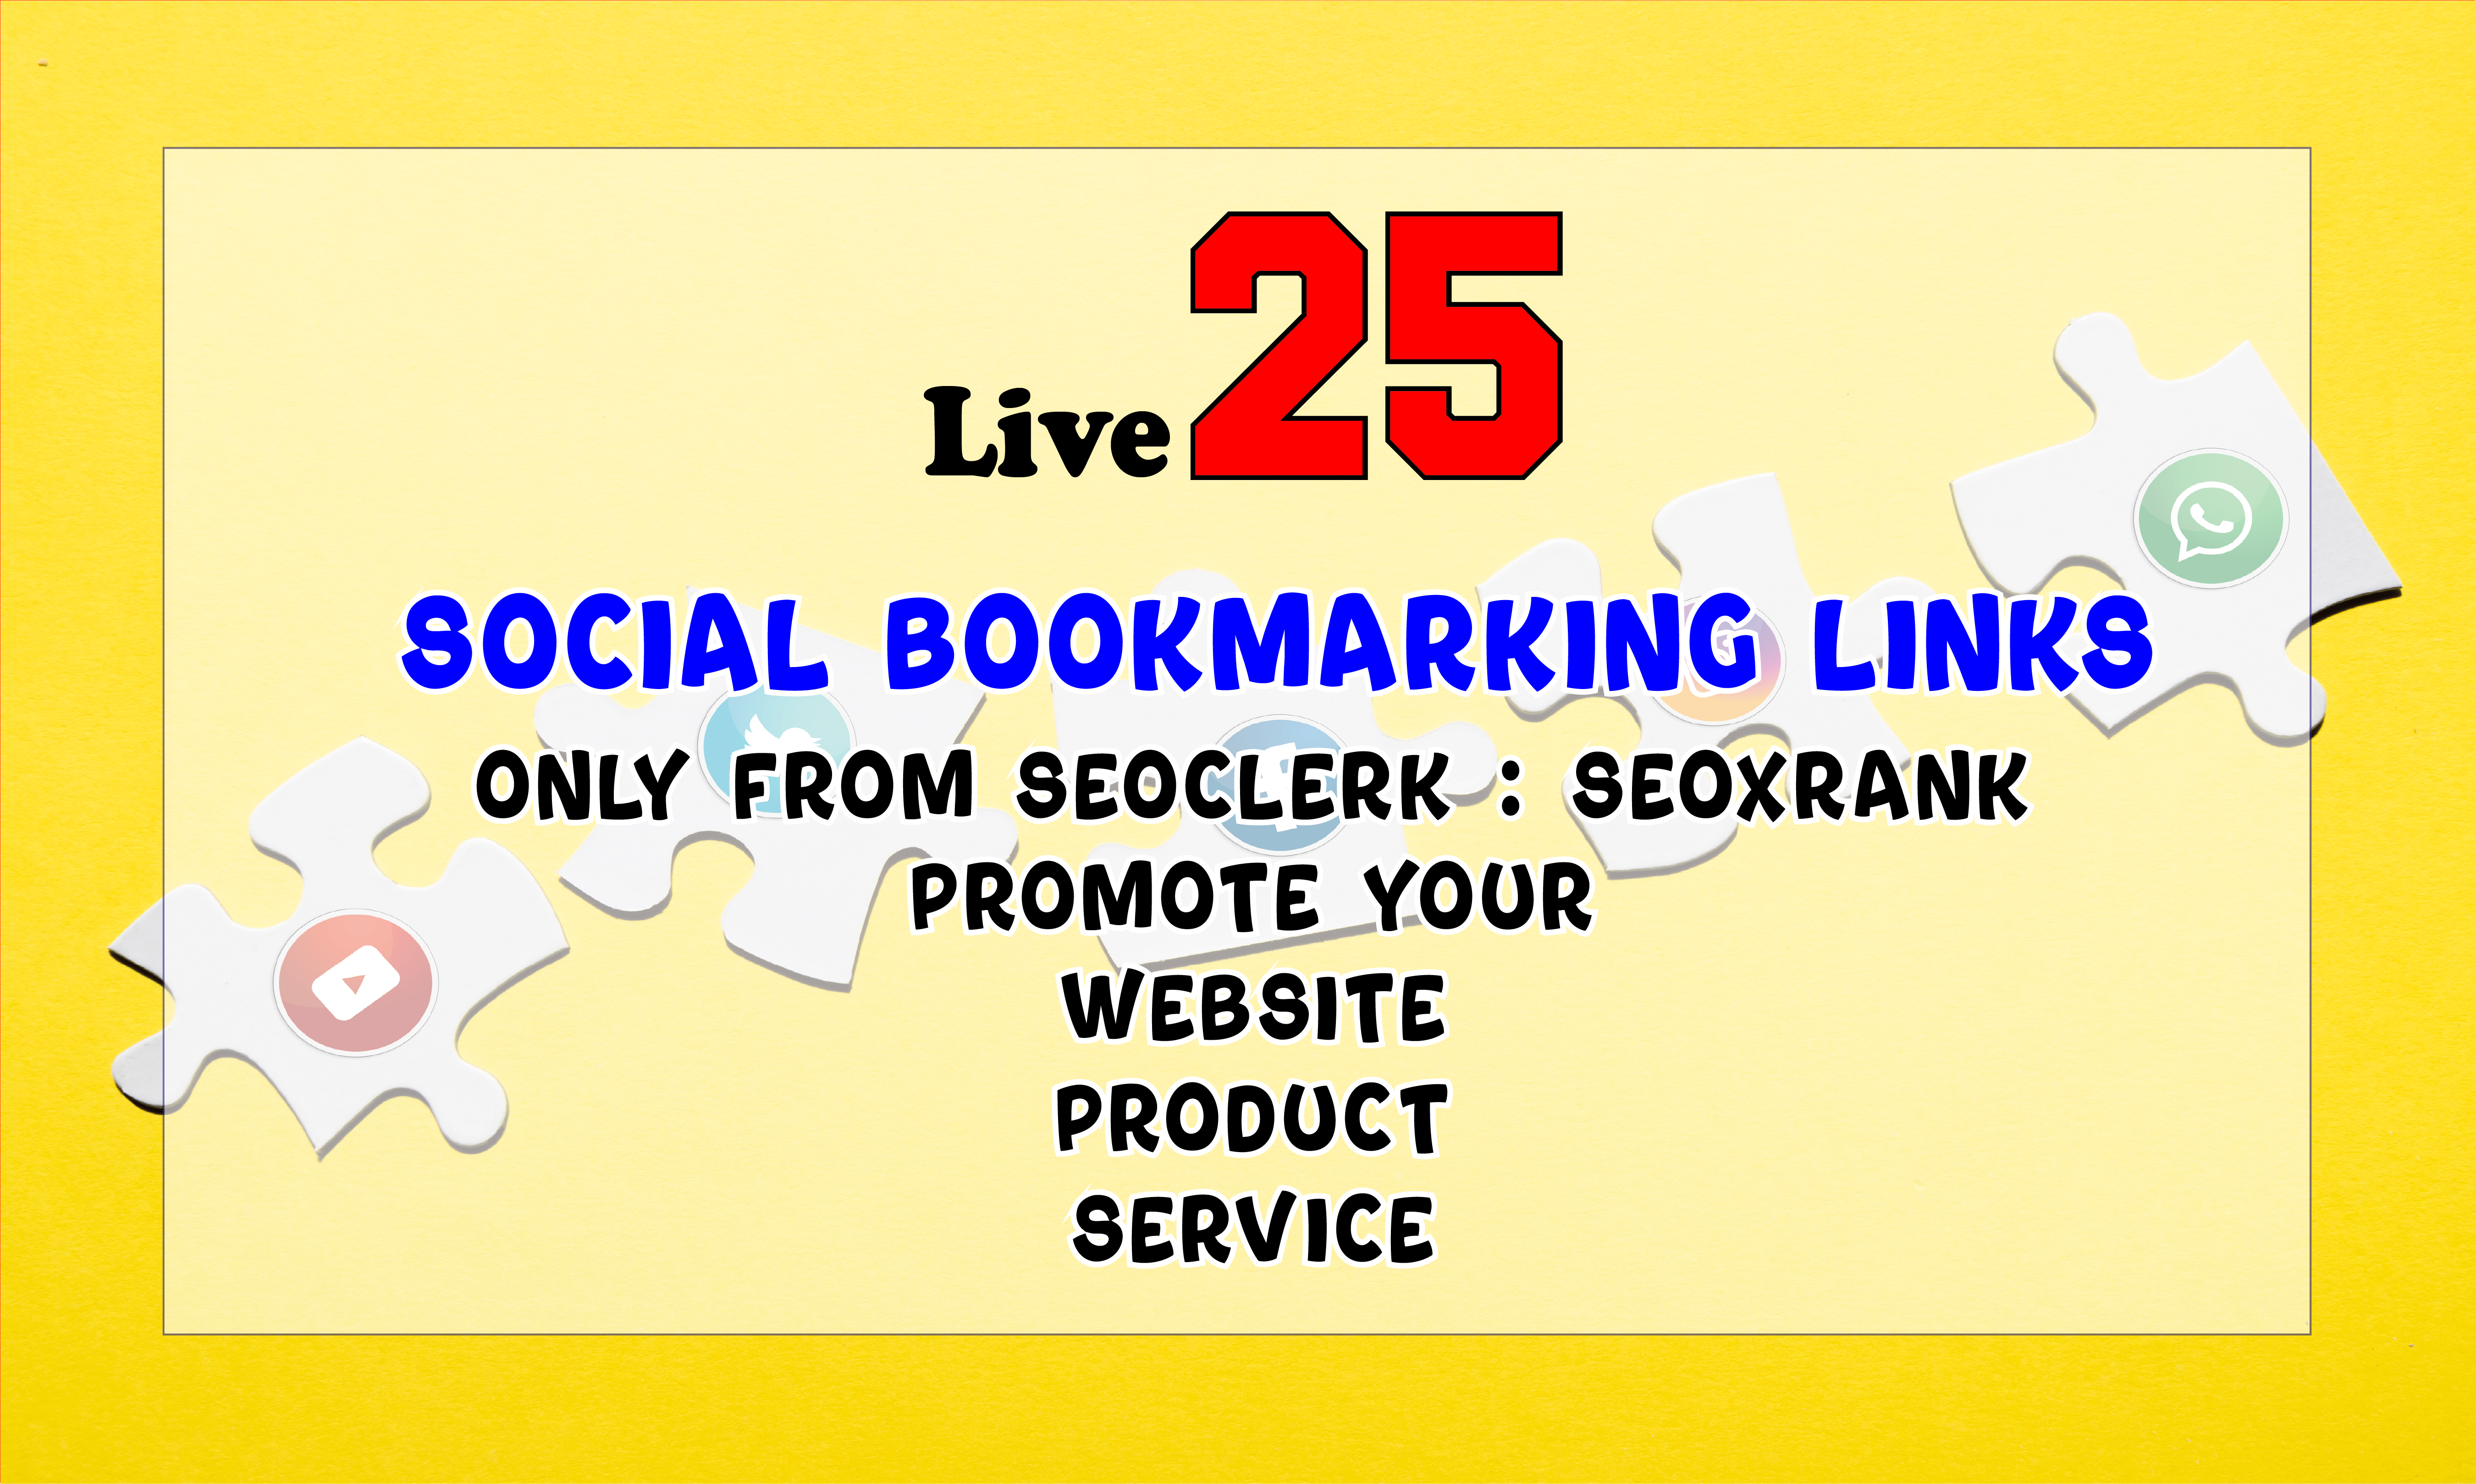 Instant 25 Live Social Bookmarks Links within 24 hours